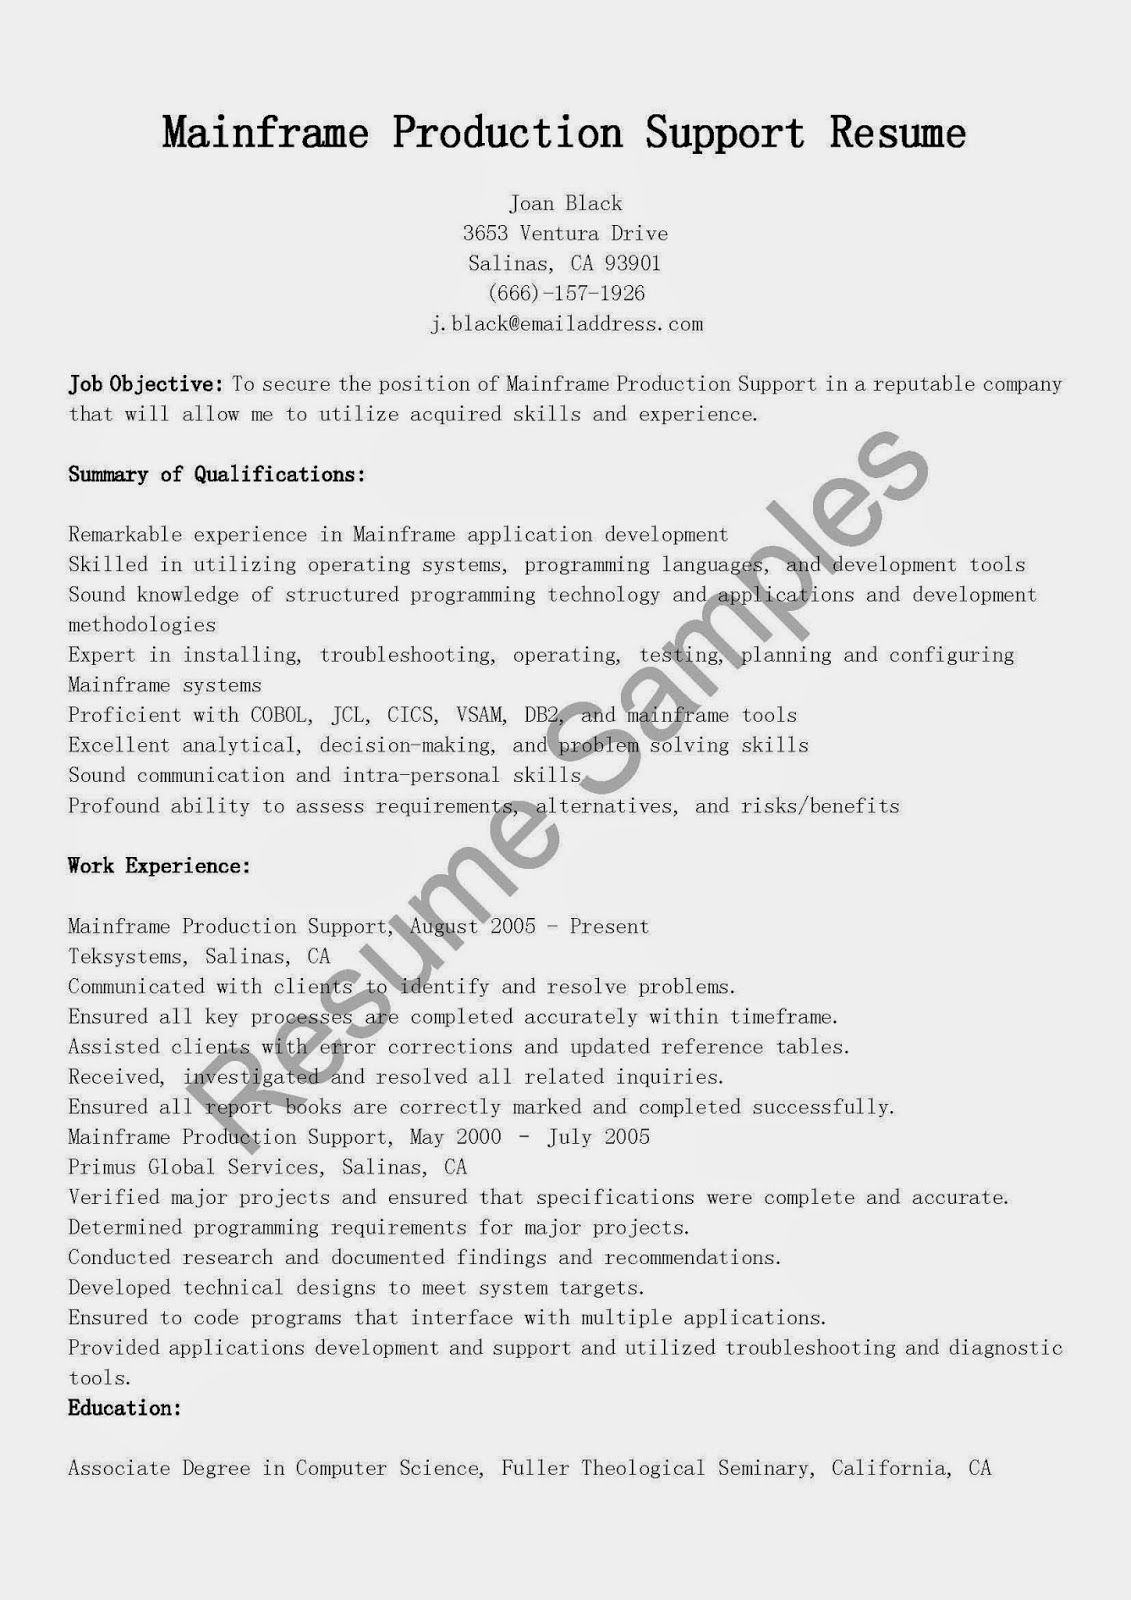 mainframe production support resume sample resume samples mainframe production support resume sample